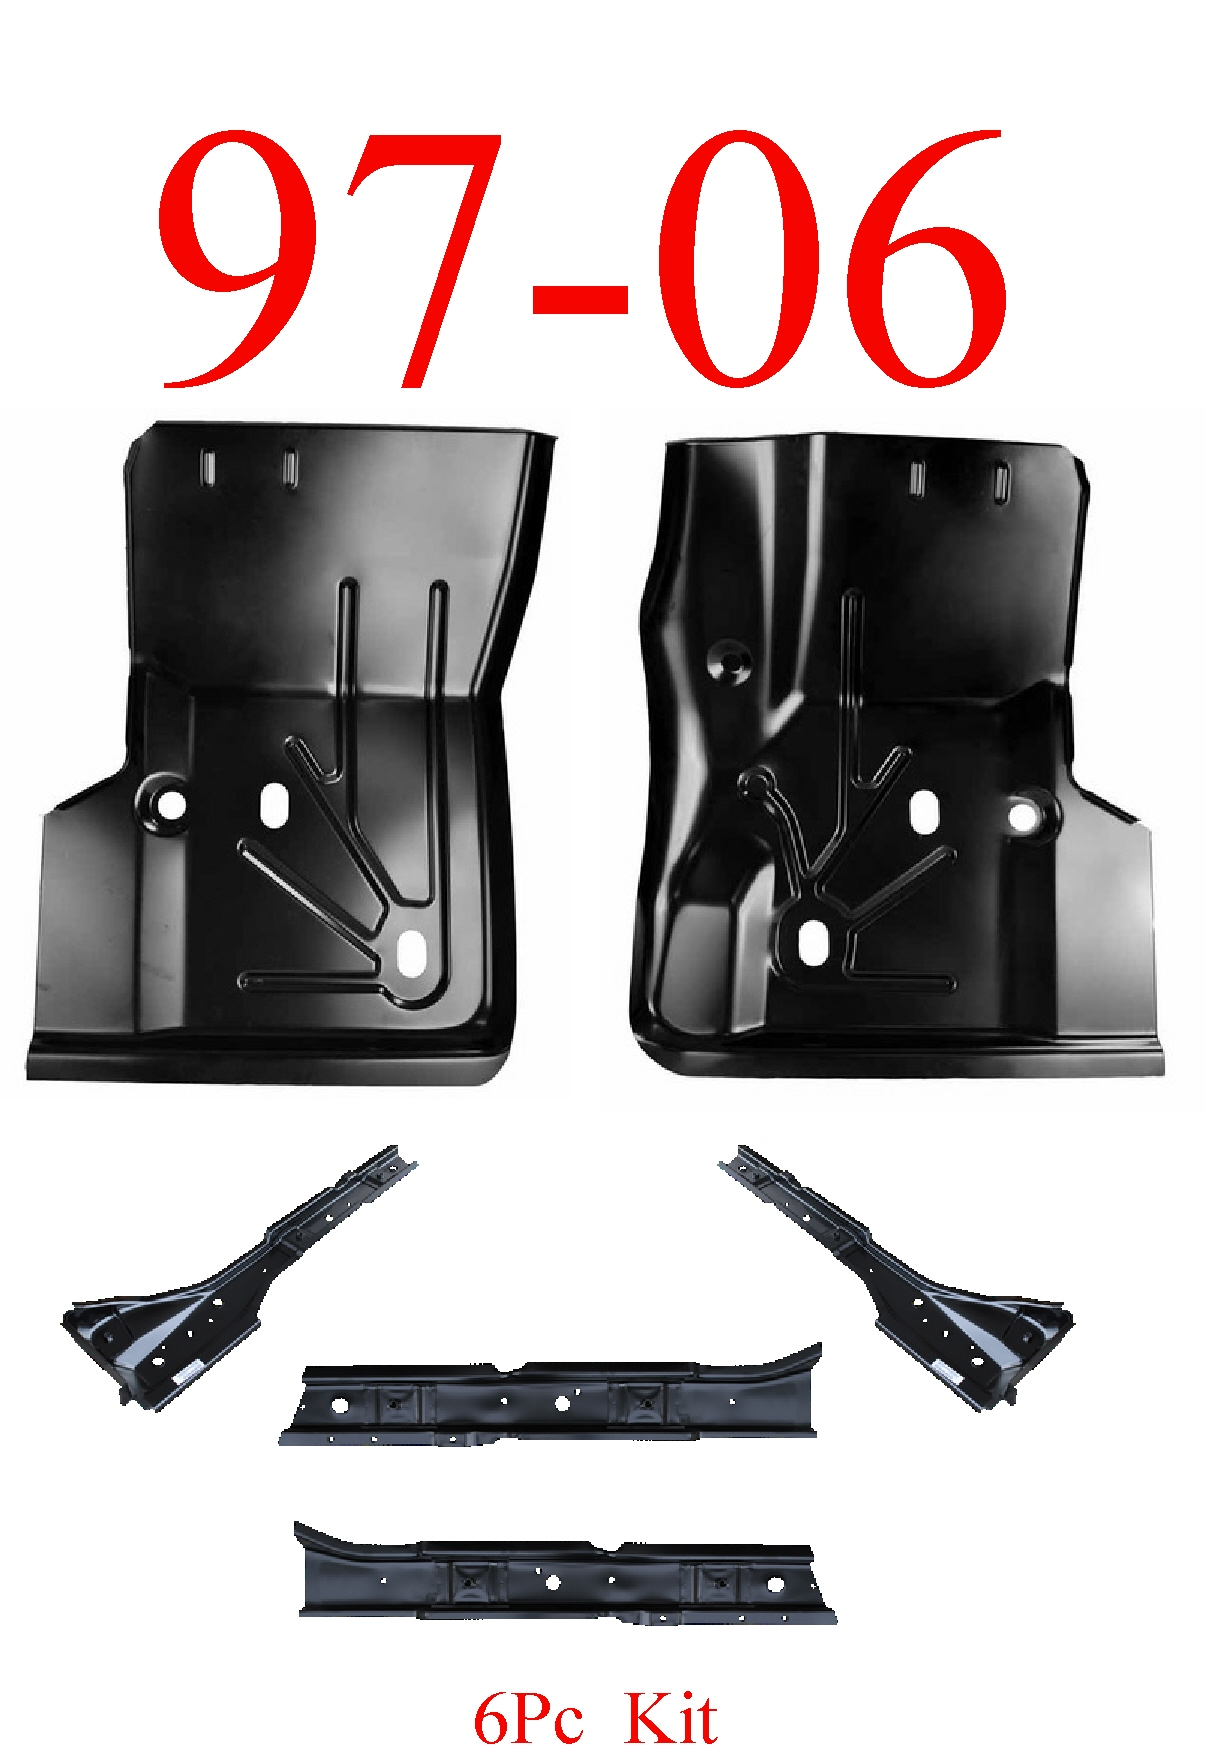 97-06 Jeep Wrangler TJ 6Pc Floor Pan, Brace & Torque Box Kit